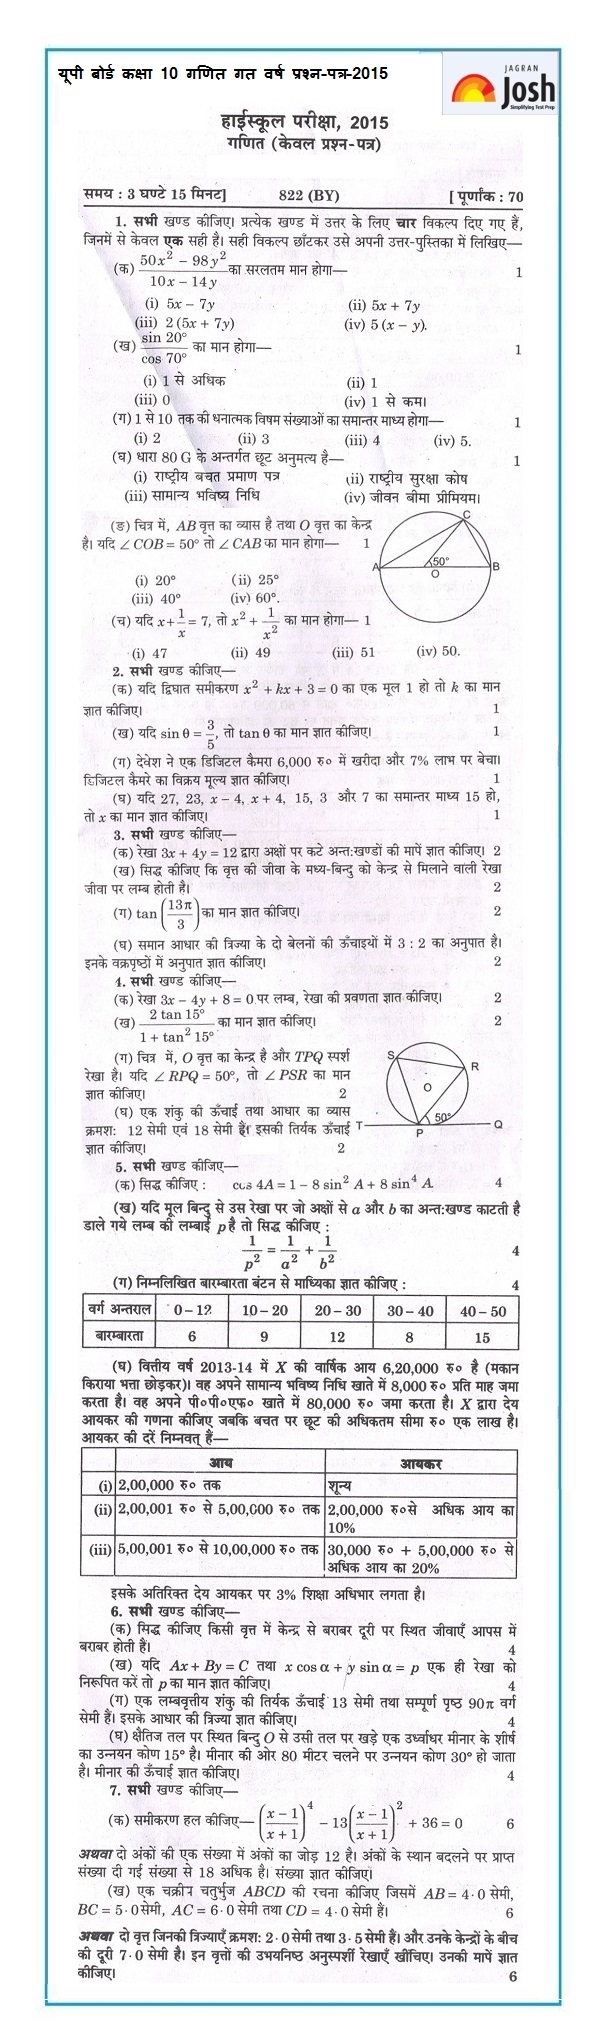 UP Board class 10th Mathematics Question Paper Set-1: 2015 | UP Board